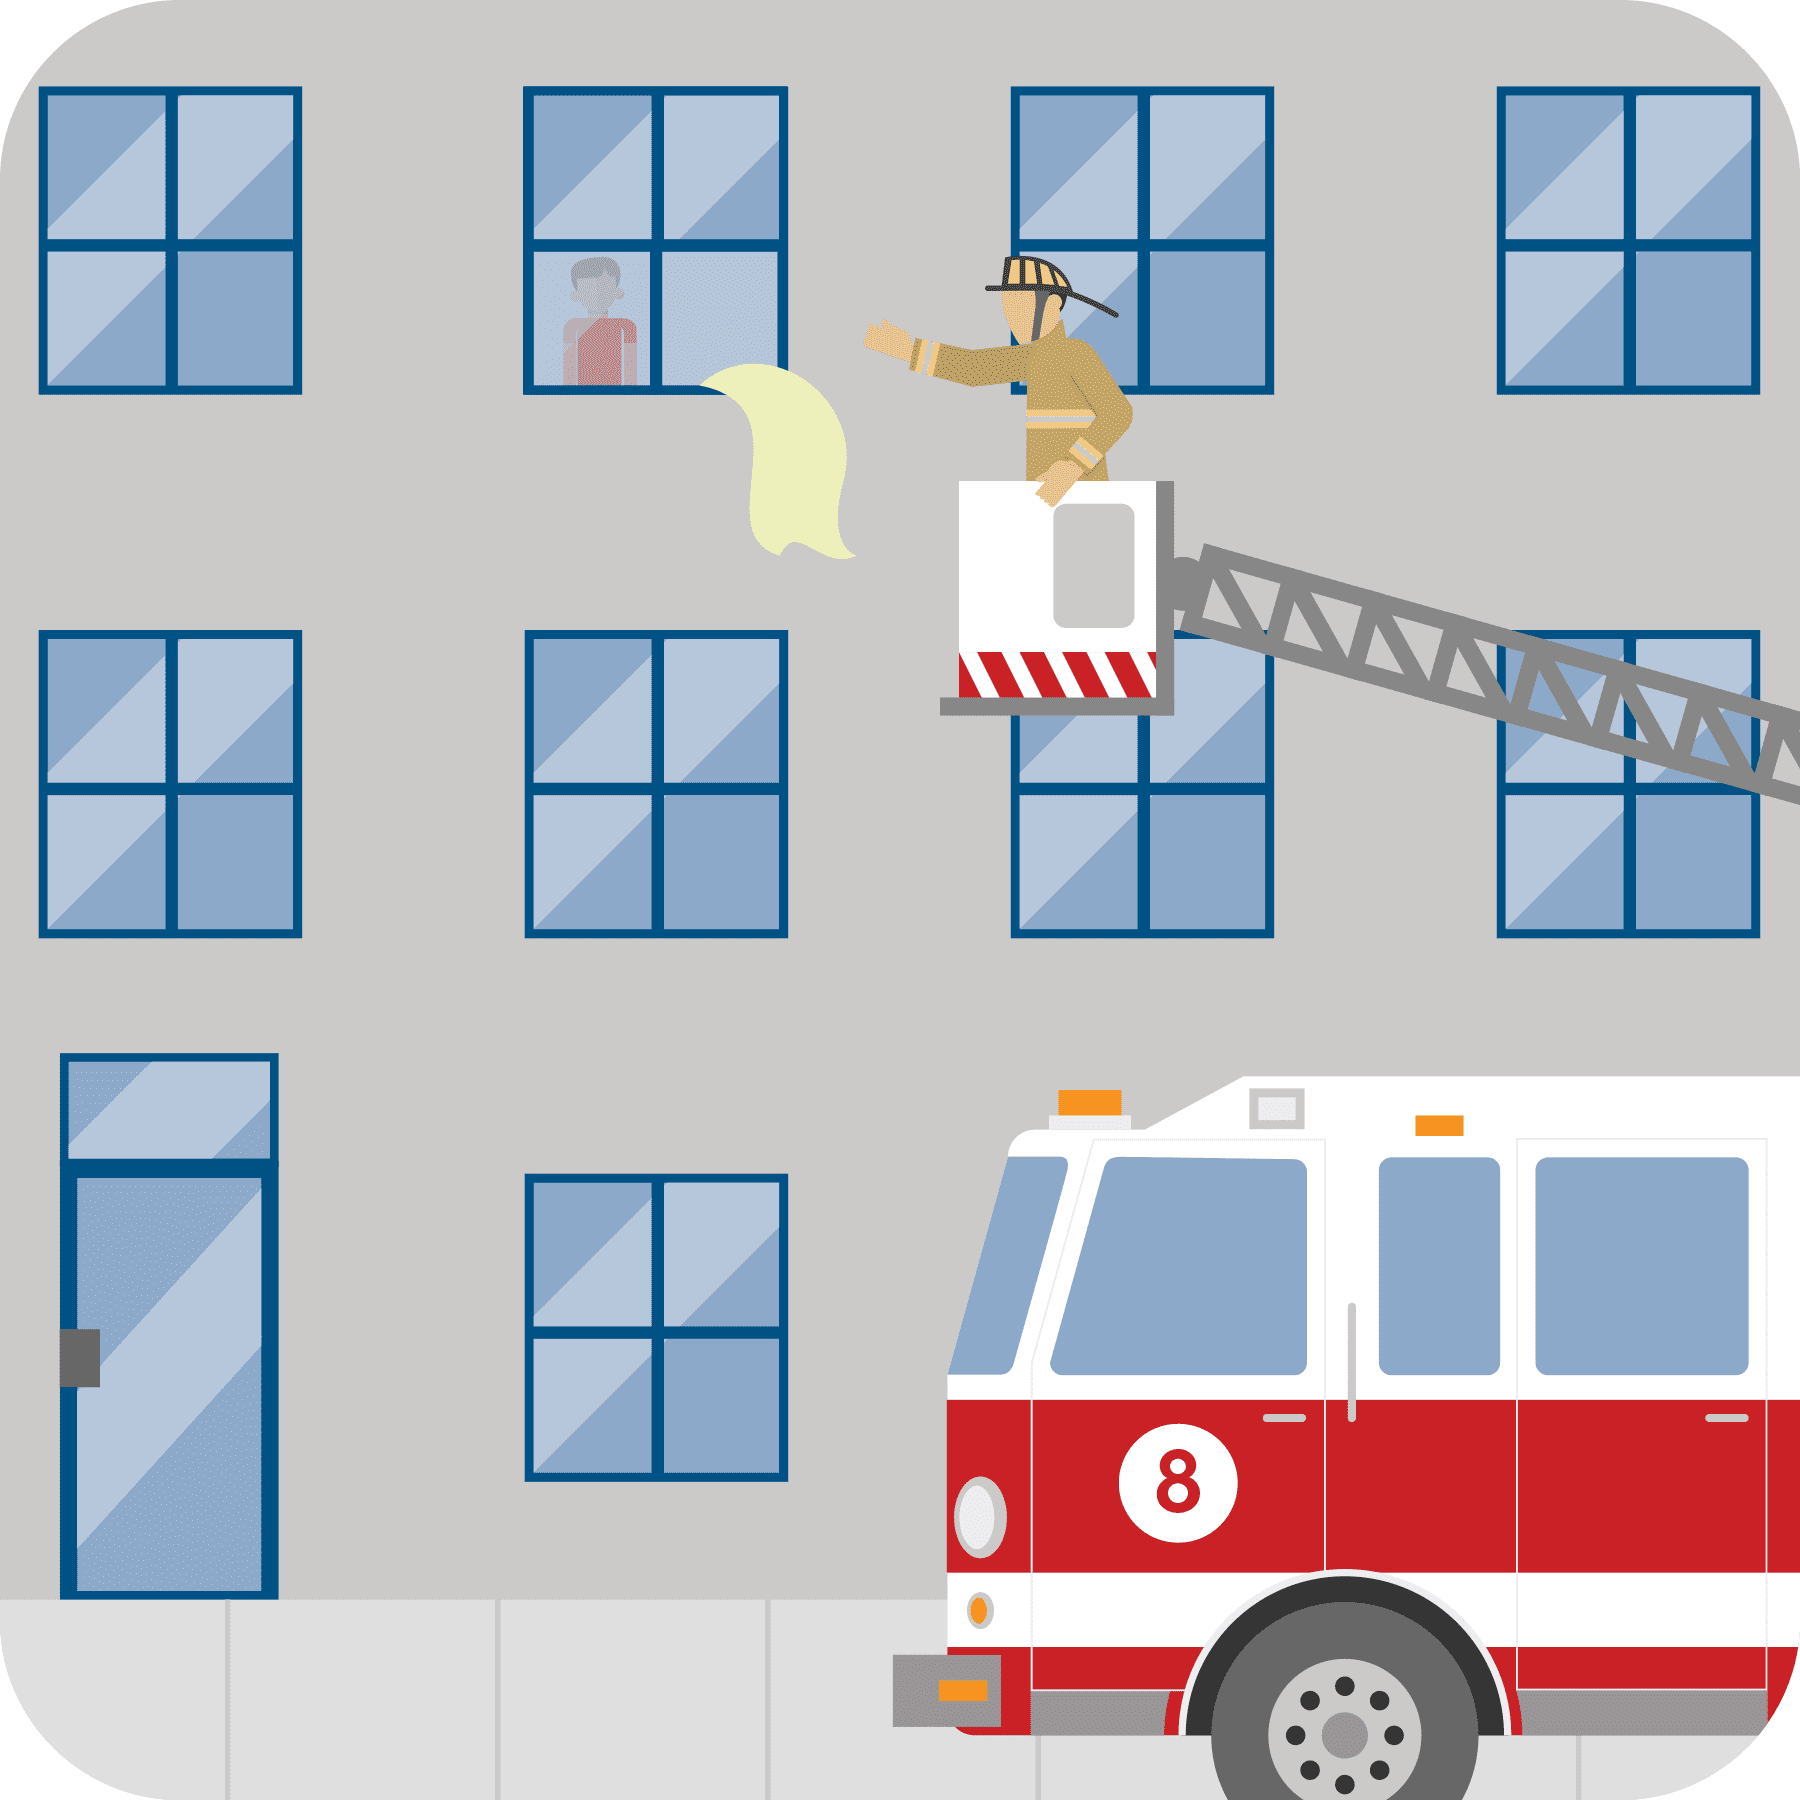 A young child has hung a bright cloth out of a window and a firefighter is rescuing him from a fire truck